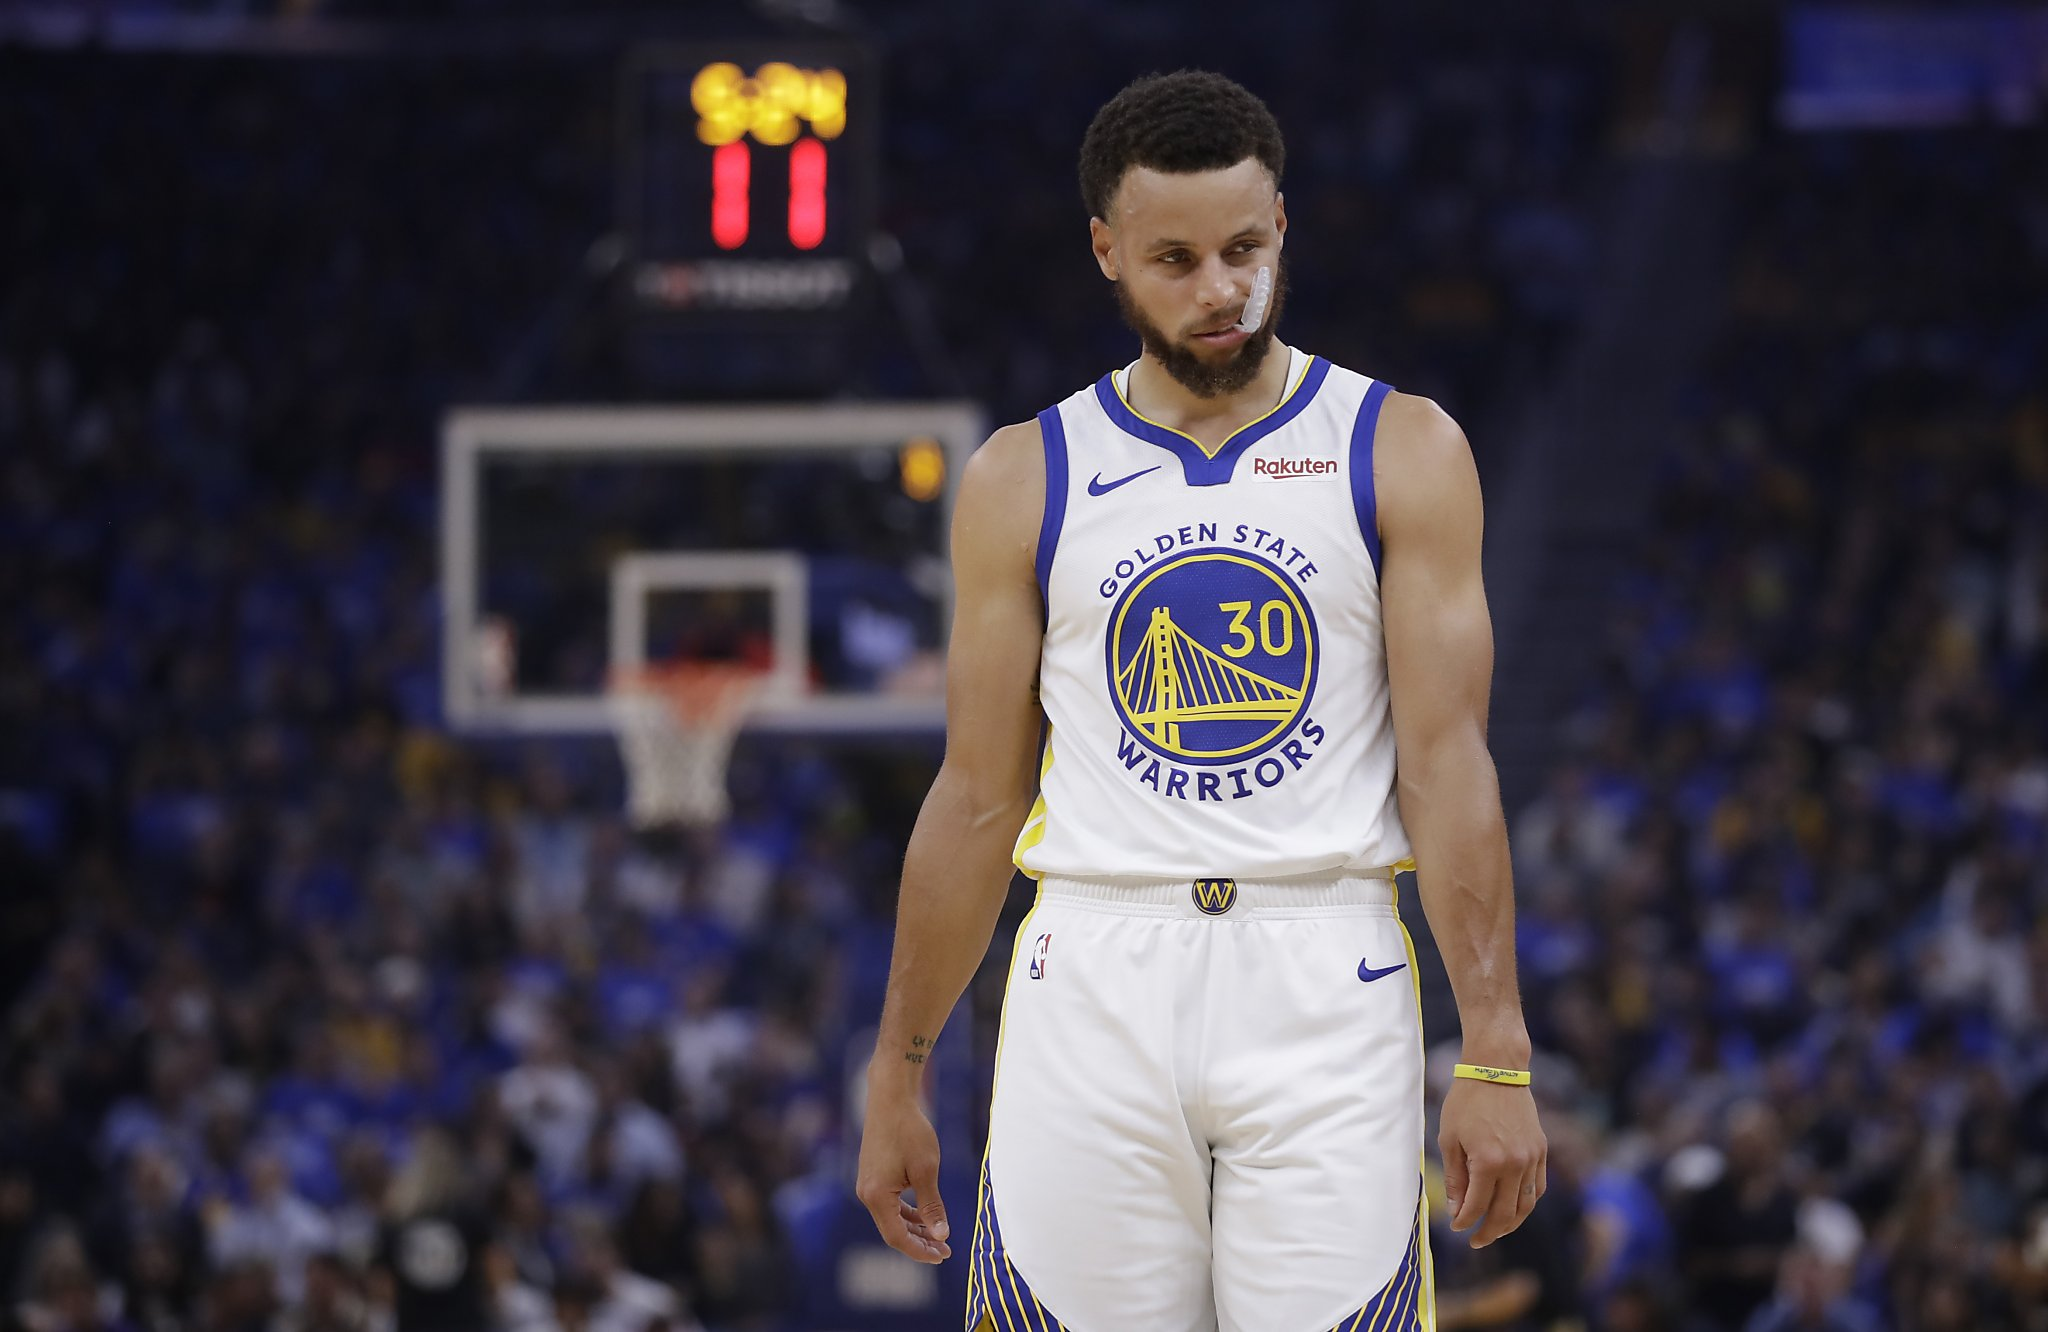 Warriors' Stephen Curry to return vs. Nets; Juan Toscano-Anderson out